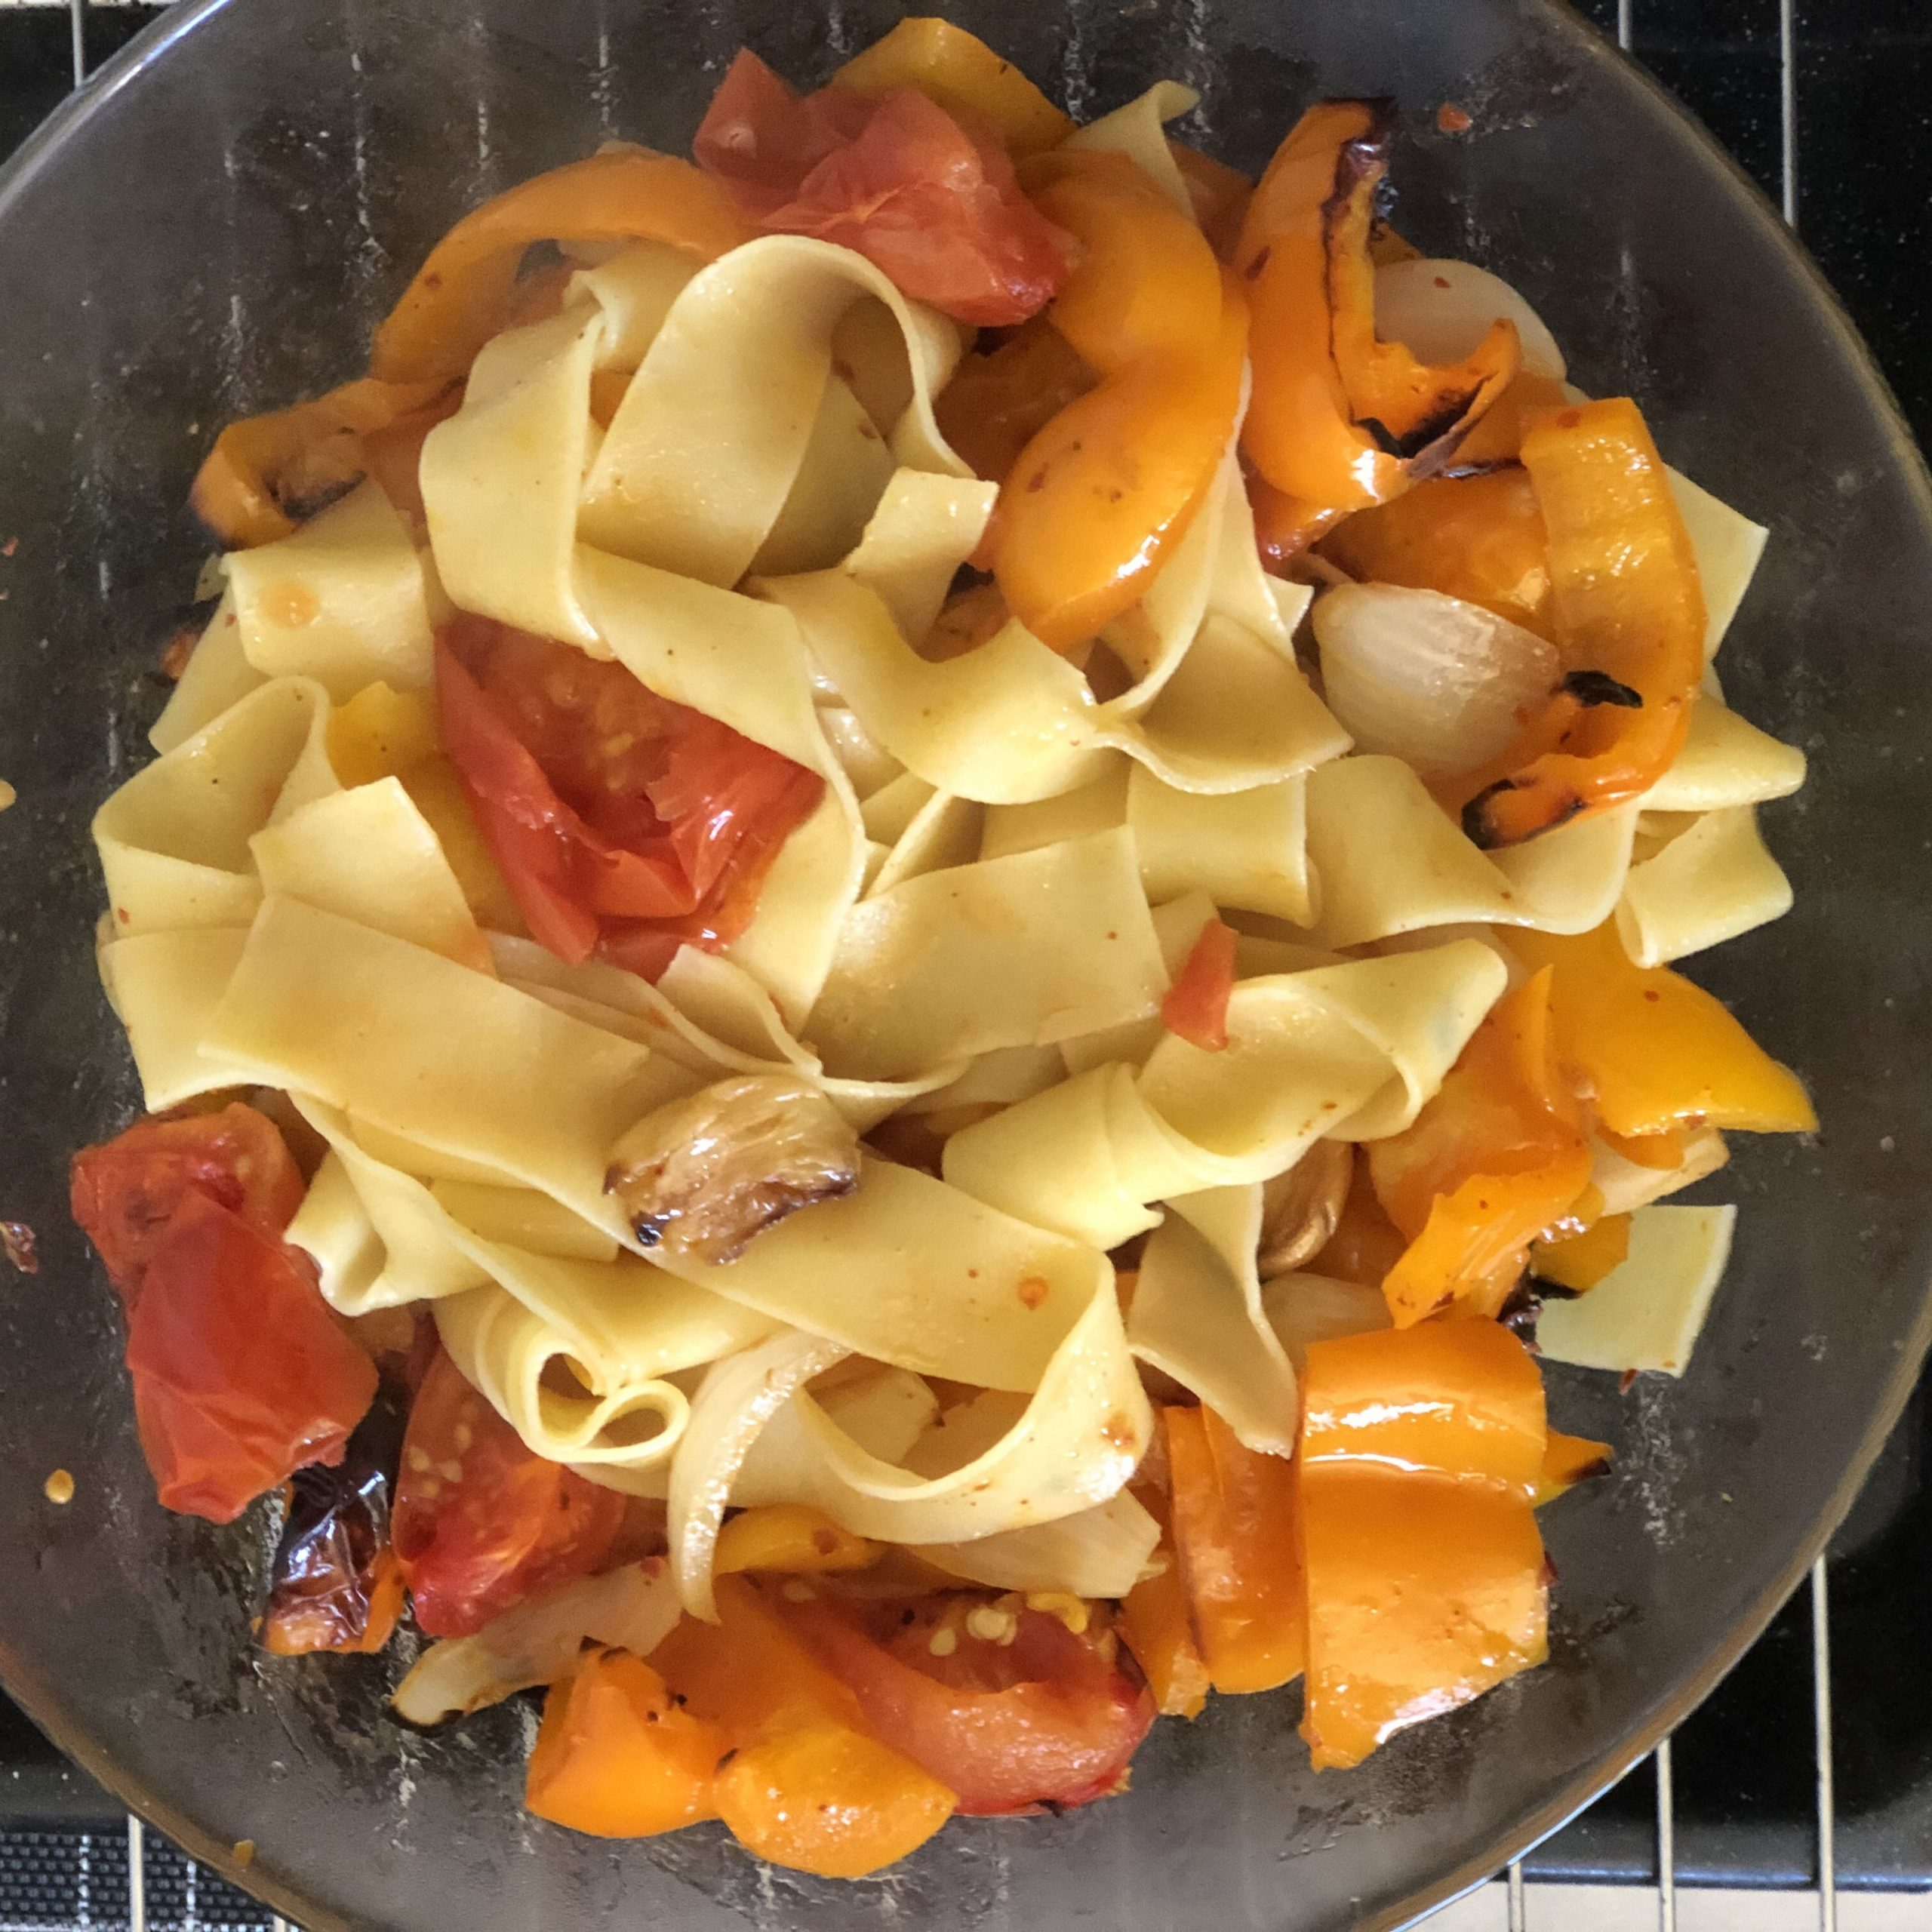 Pappardelle with roasted peppers, tomatoes, onions, chili, garlic and olive oil